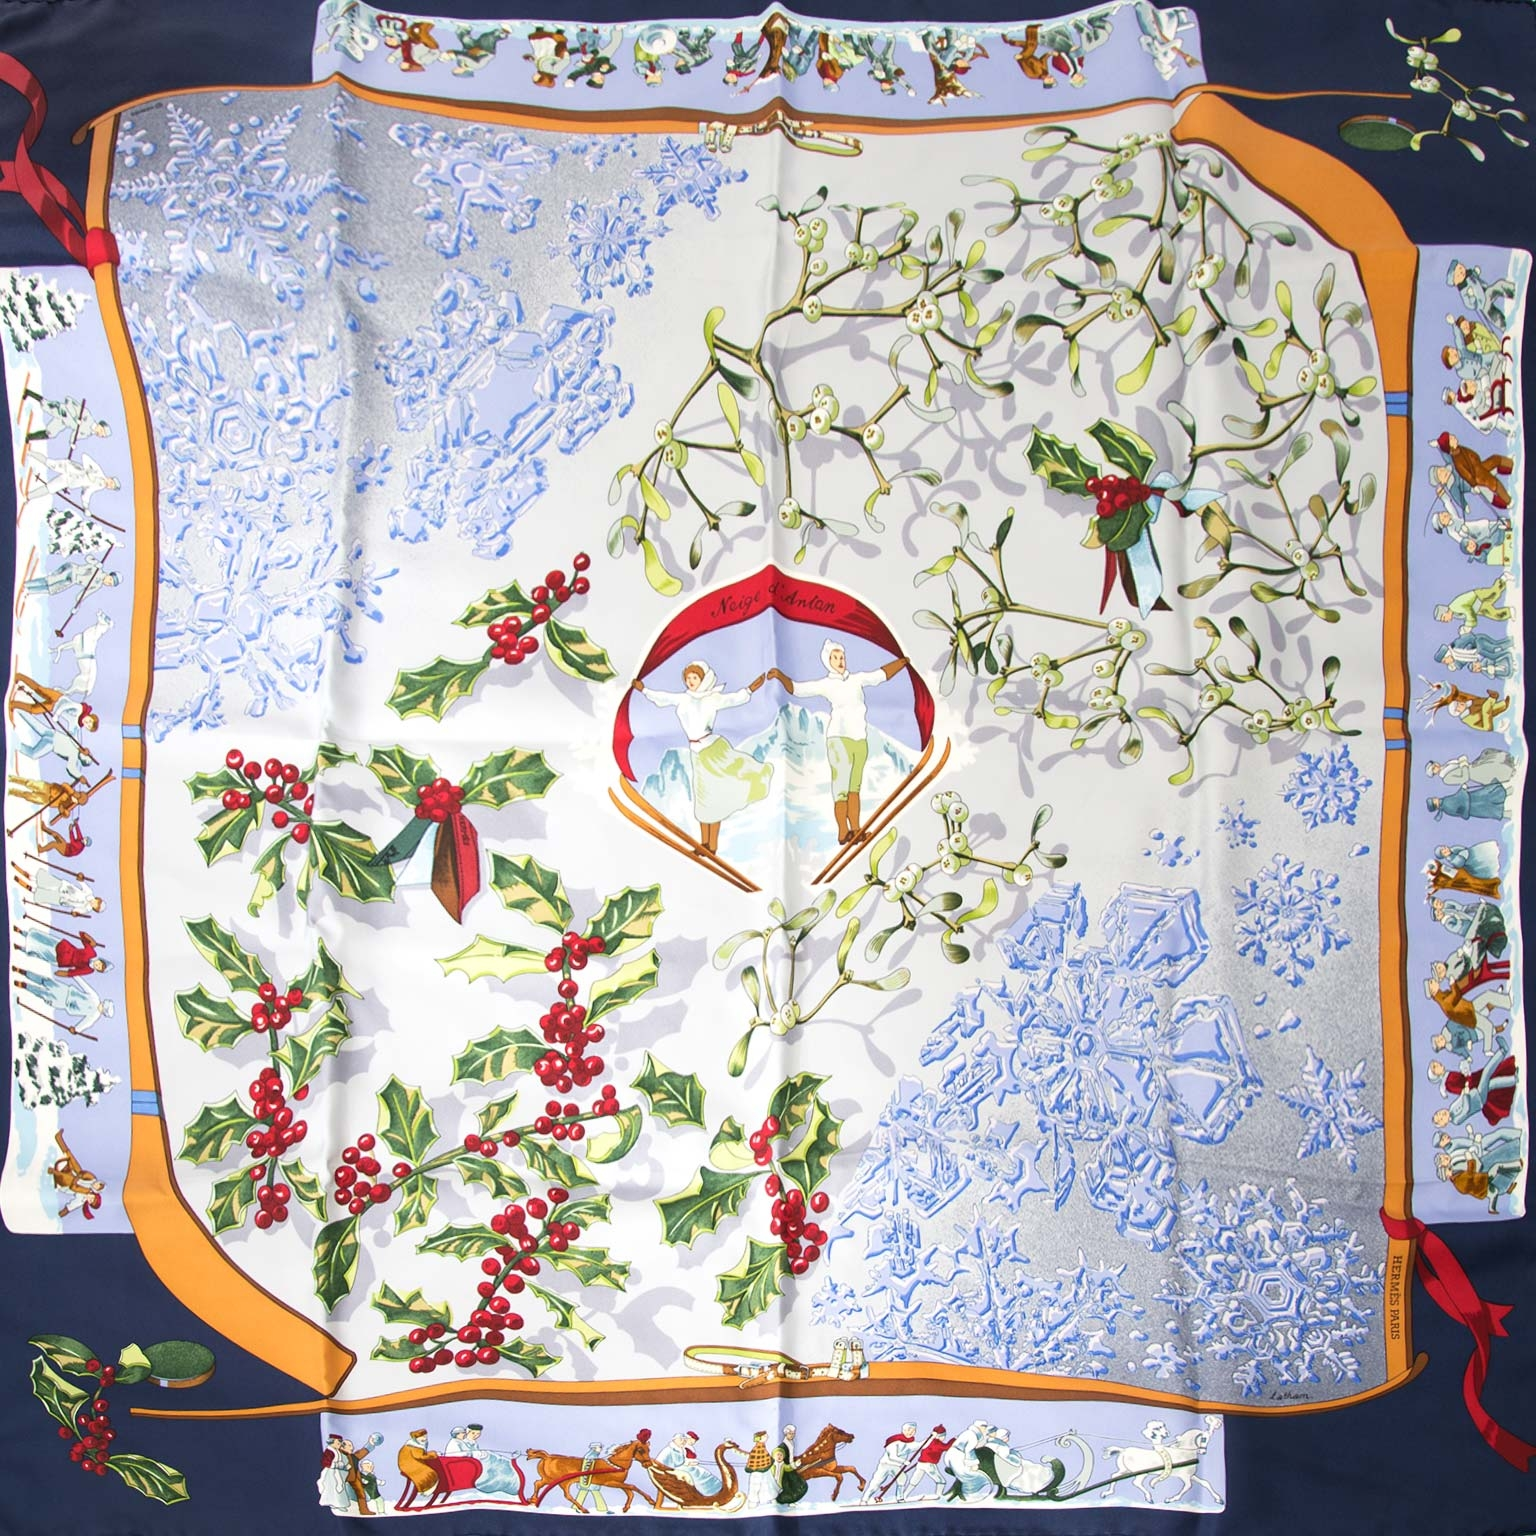 Hermès Paris Neige d'Antan Silk Carré Scarf Buy authentic designer Hermes secondhand silk scarves at Labellov at the best price. Safe and secure shopping. Koop tweedehands authentieke Hermes sjaals tassen bij designer webwinkel labellov.